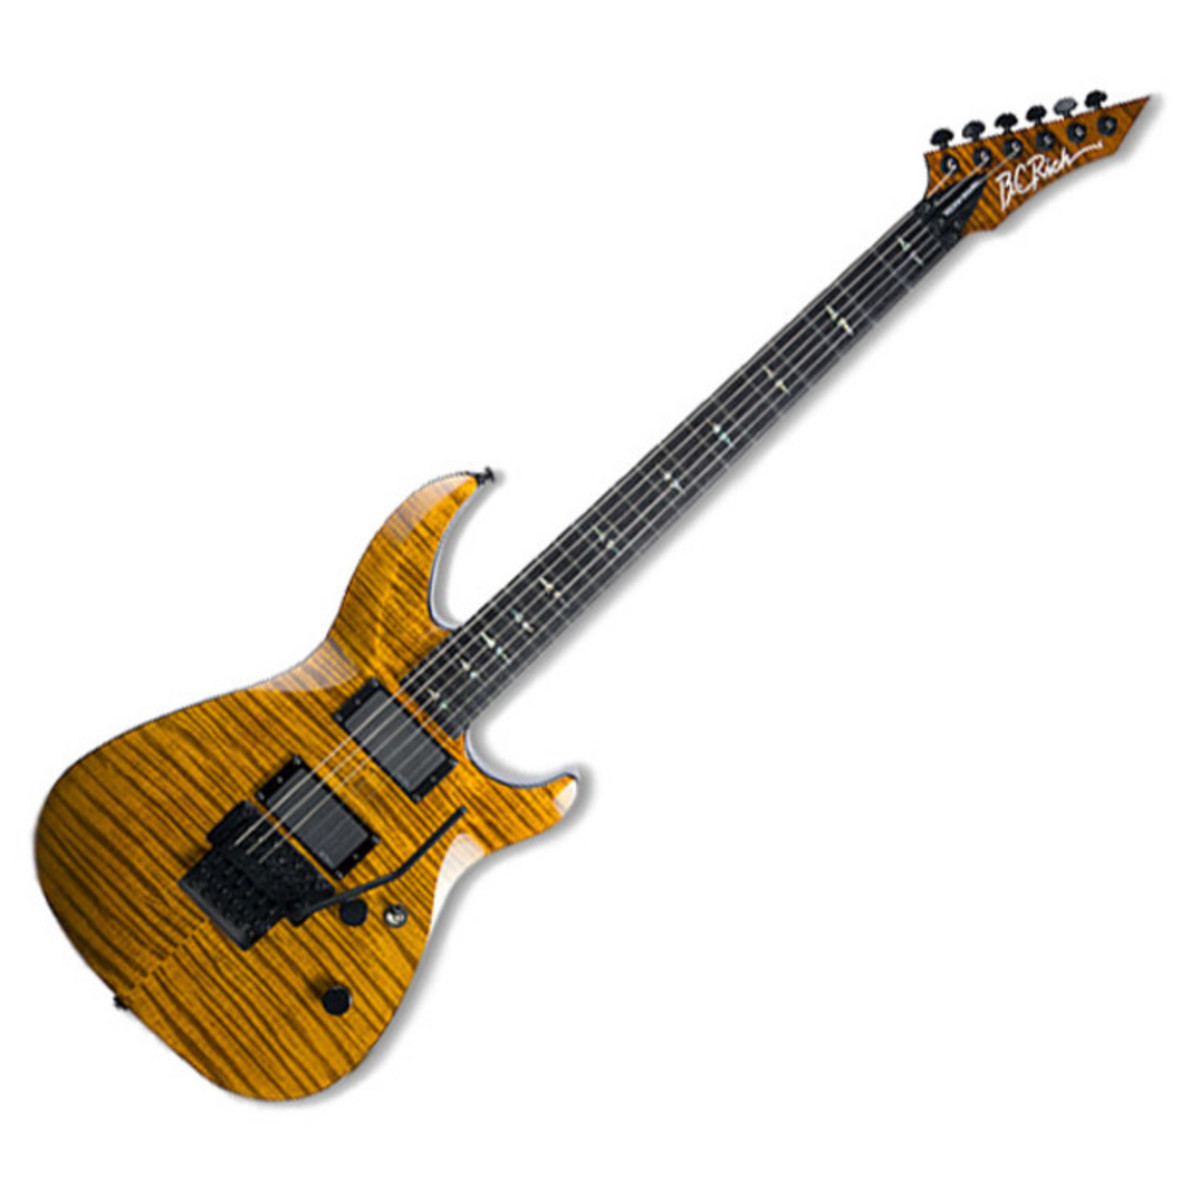 disc bc rich villain deluxe electric guitar tiger eye at gear4music. Black Bedroom Furniture Sets. Home Design Ideas